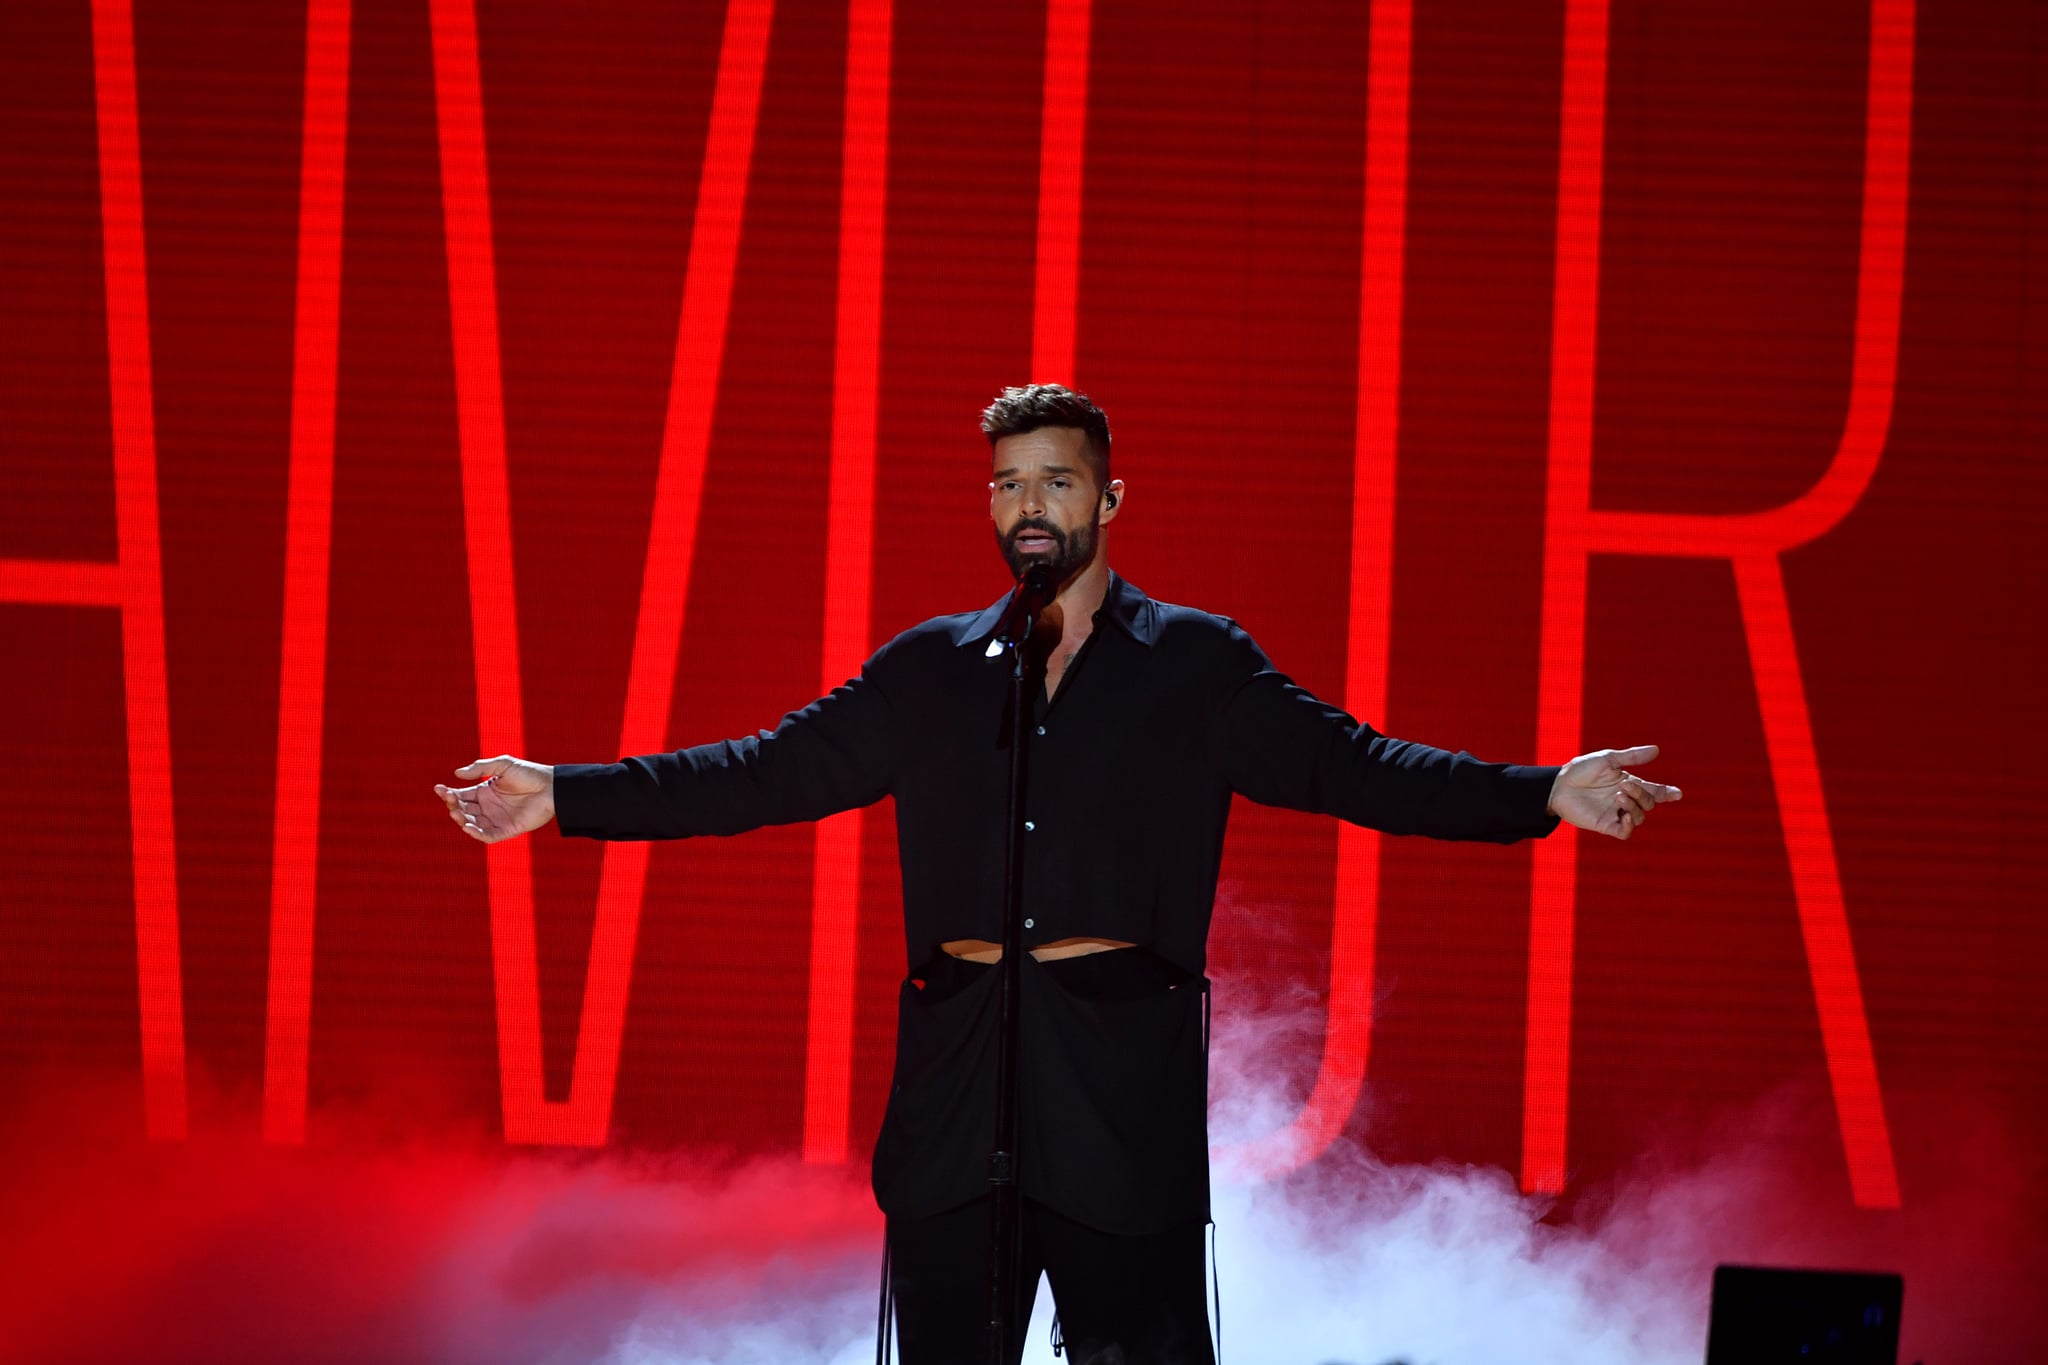 MIAMI, FLORIDA - FEBRUARY 20: Ricky Martin performs live on stage at Univision's Premio Lo Nuestro 2020 at AmericanAirlines Arena on February 20, 2020 in Miami, Florida. (Photo by Jason Koerner/Getty Images)